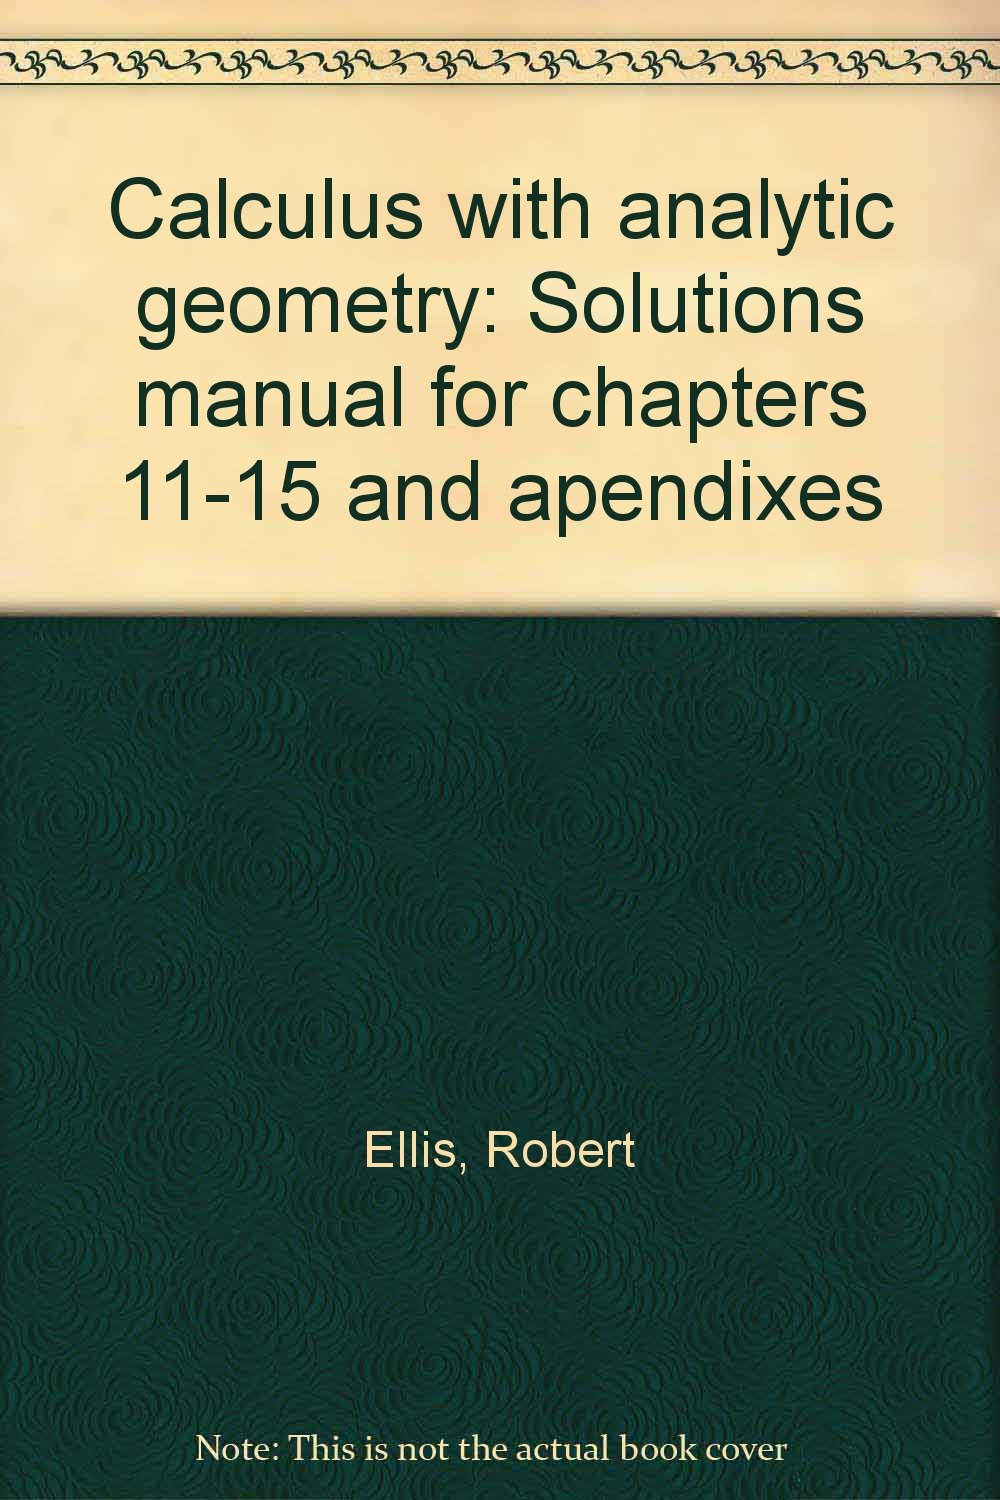 Calculus with analytic geometry: Solutions manual for chapters 11-15 and  apendixes: Robert Ellis: 9780155057302: Amazon.com: Books